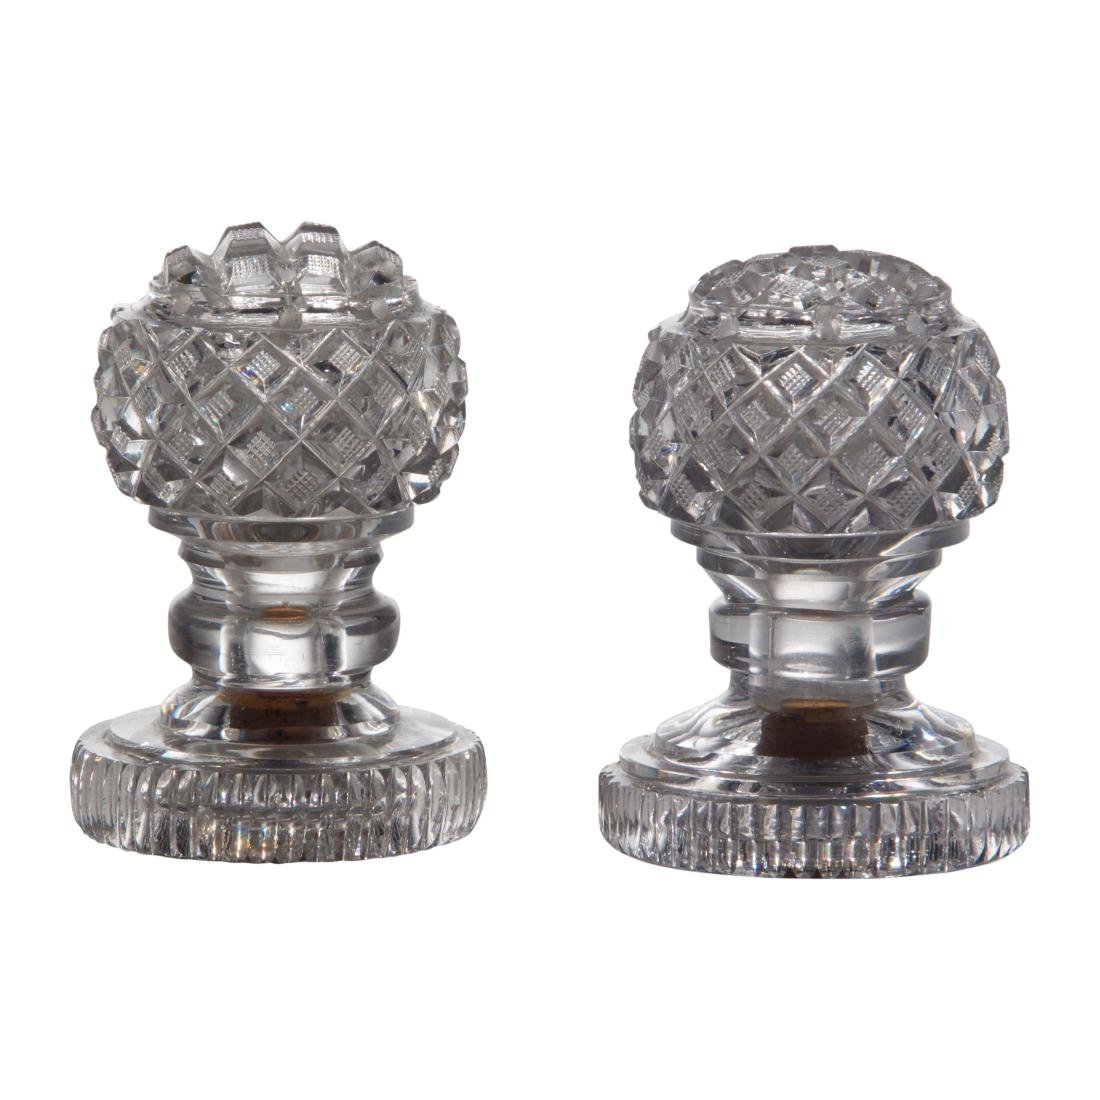 Pair of Glass Sugar Sifters or Casters